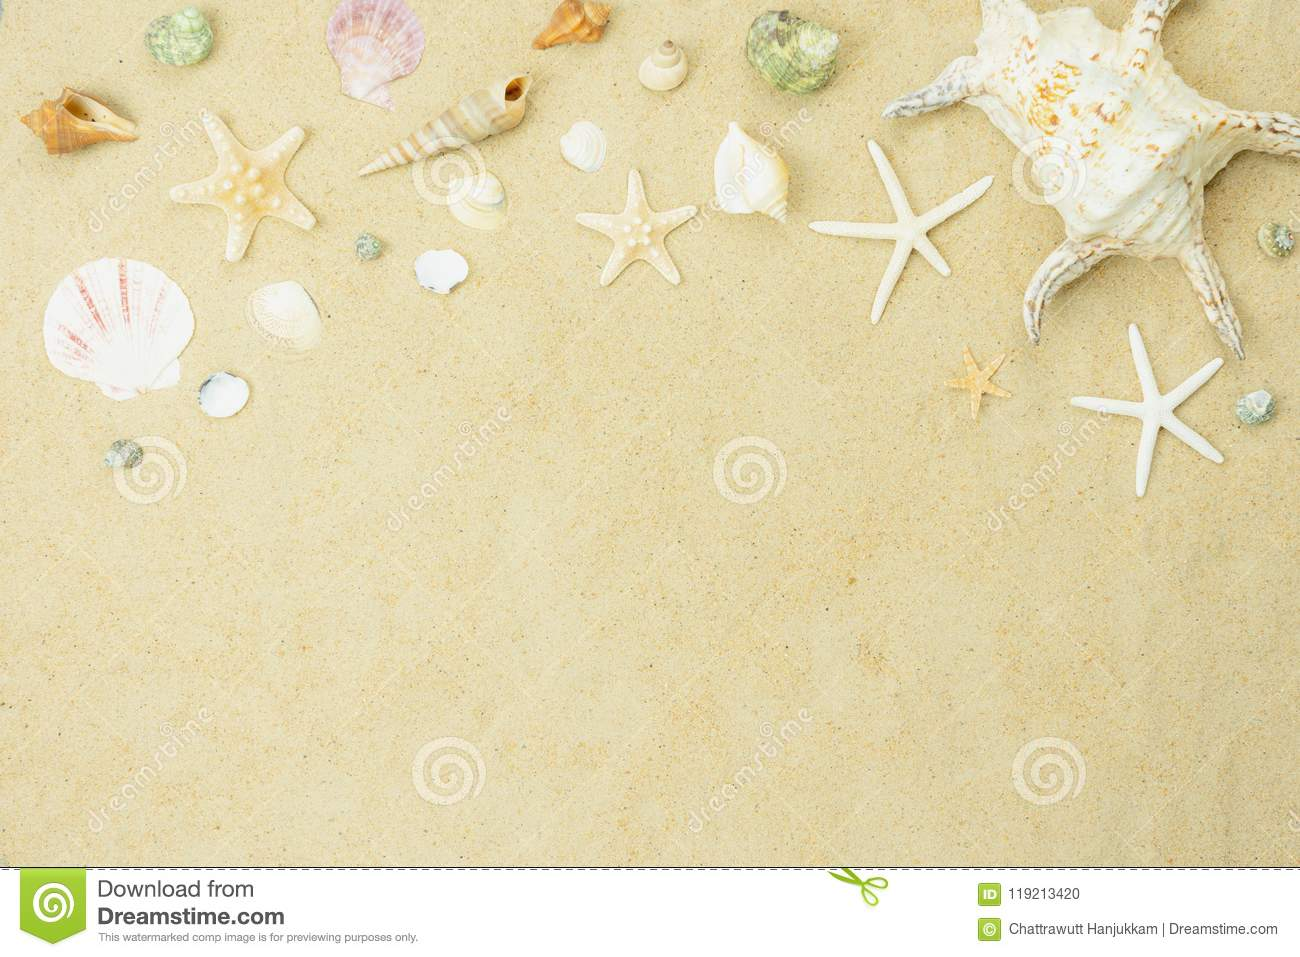 Table top view aerial image of summer & travel beach holiday in the season background concept.